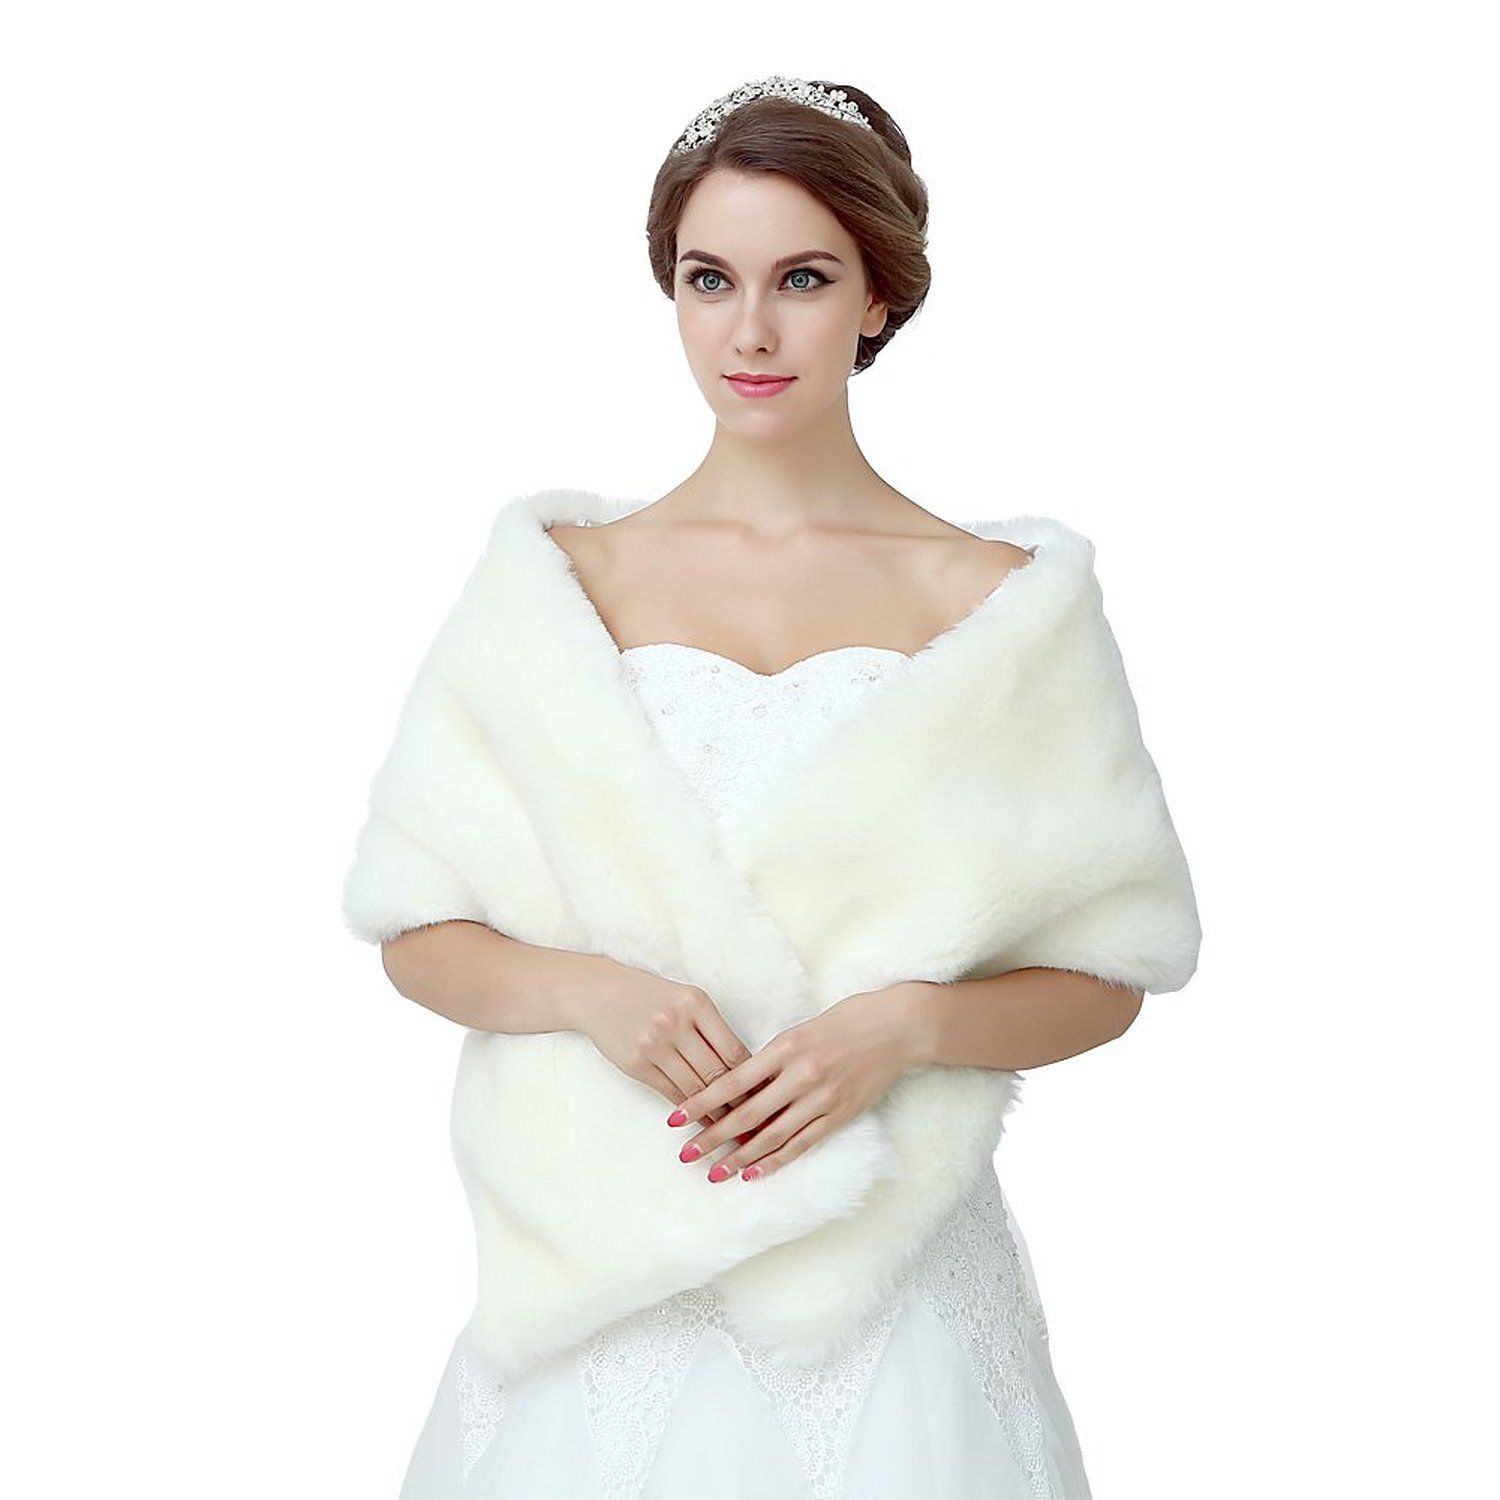 Diyouth Ivory Shawl Wrap Faux Fur Scarf Stoles For Wedding Dresses At Amazon Womens Clothing Store